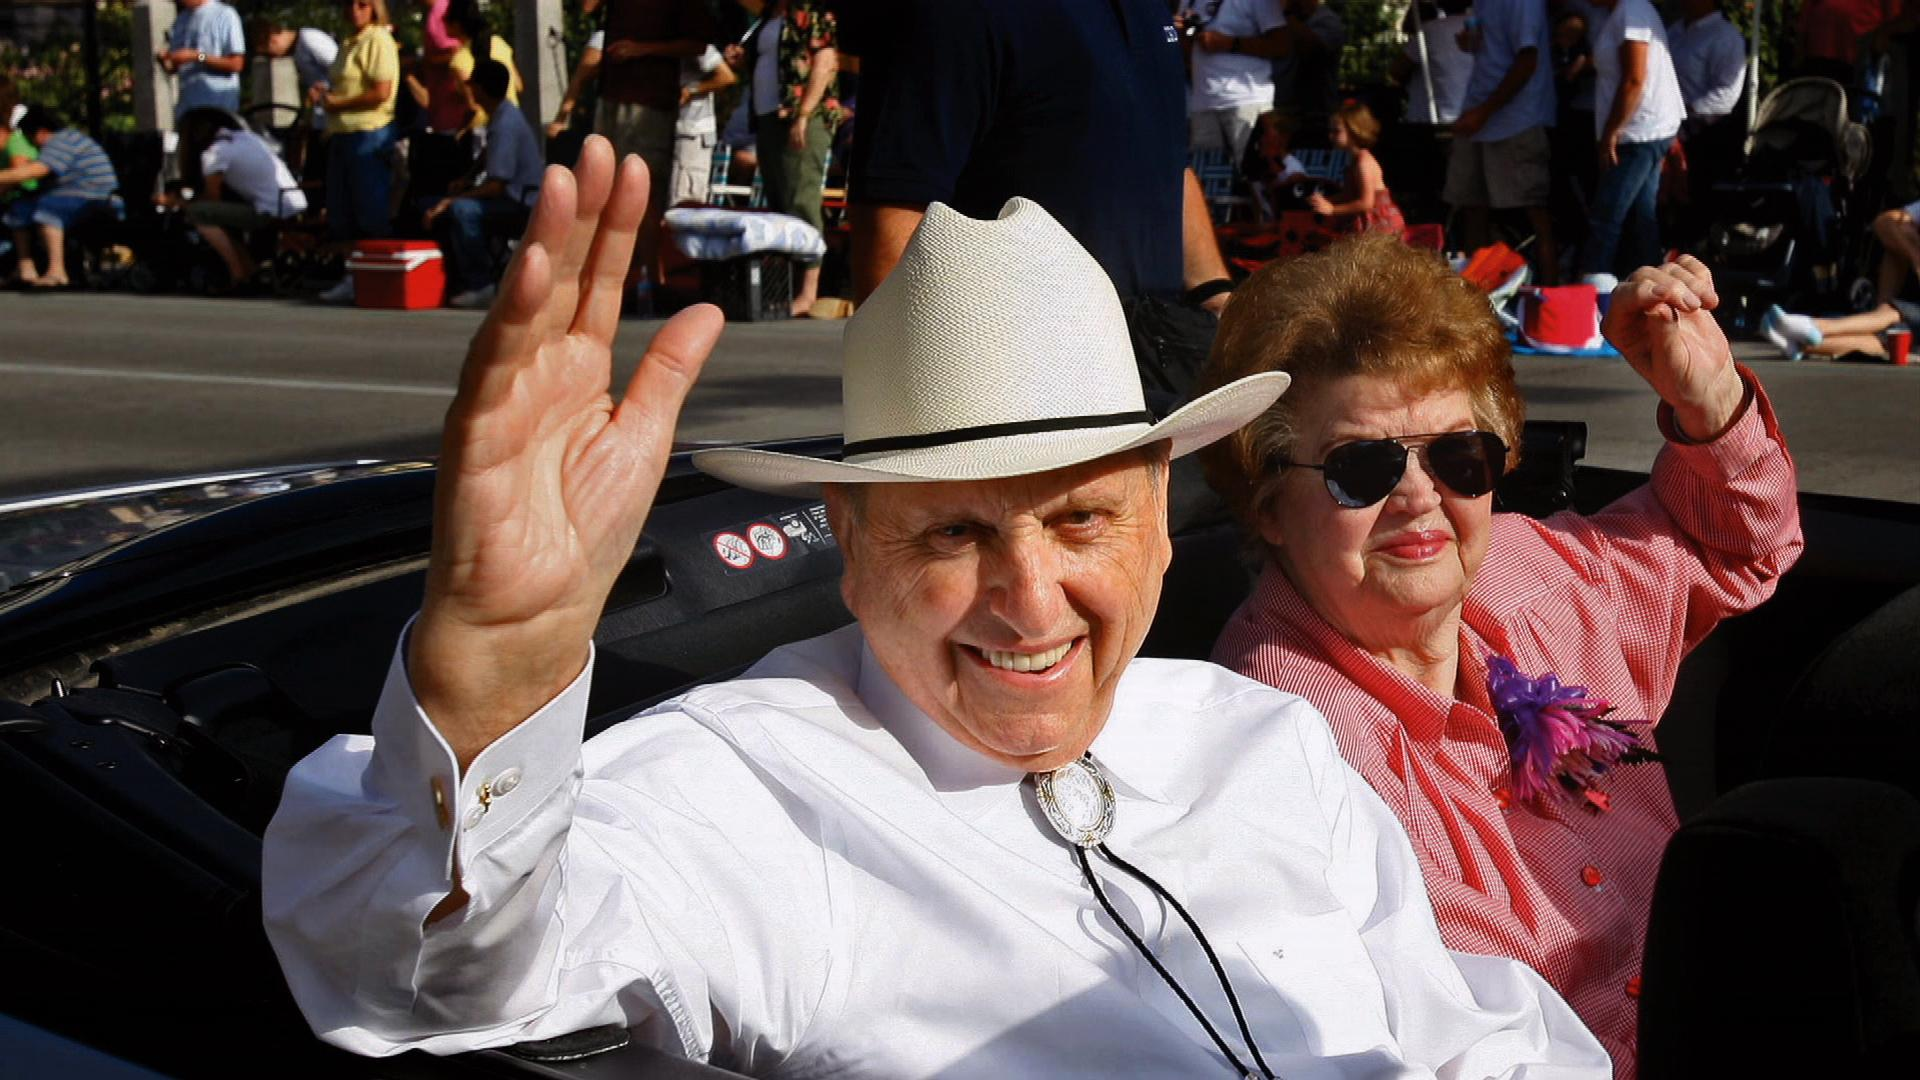 president-monson-with-wife-May-10_1514983907822.jpg